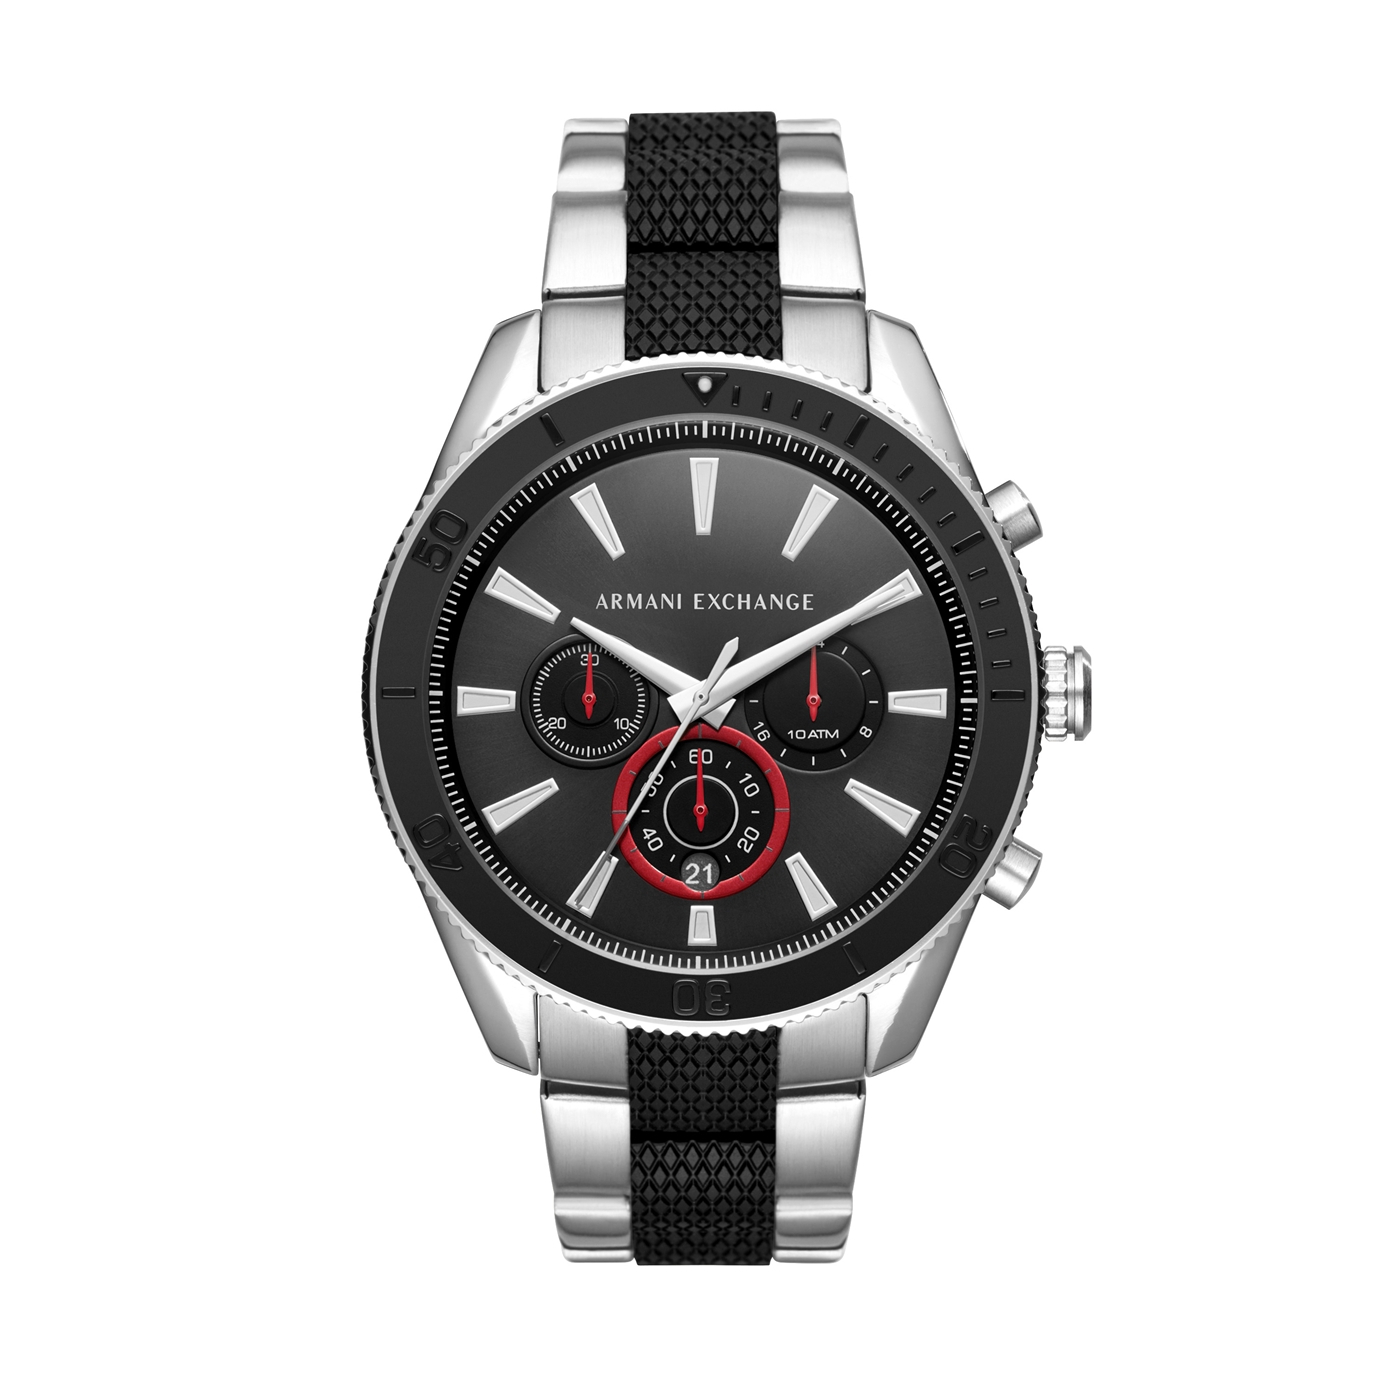 Bilde av Armani Exchange Enzo Watch AX1813